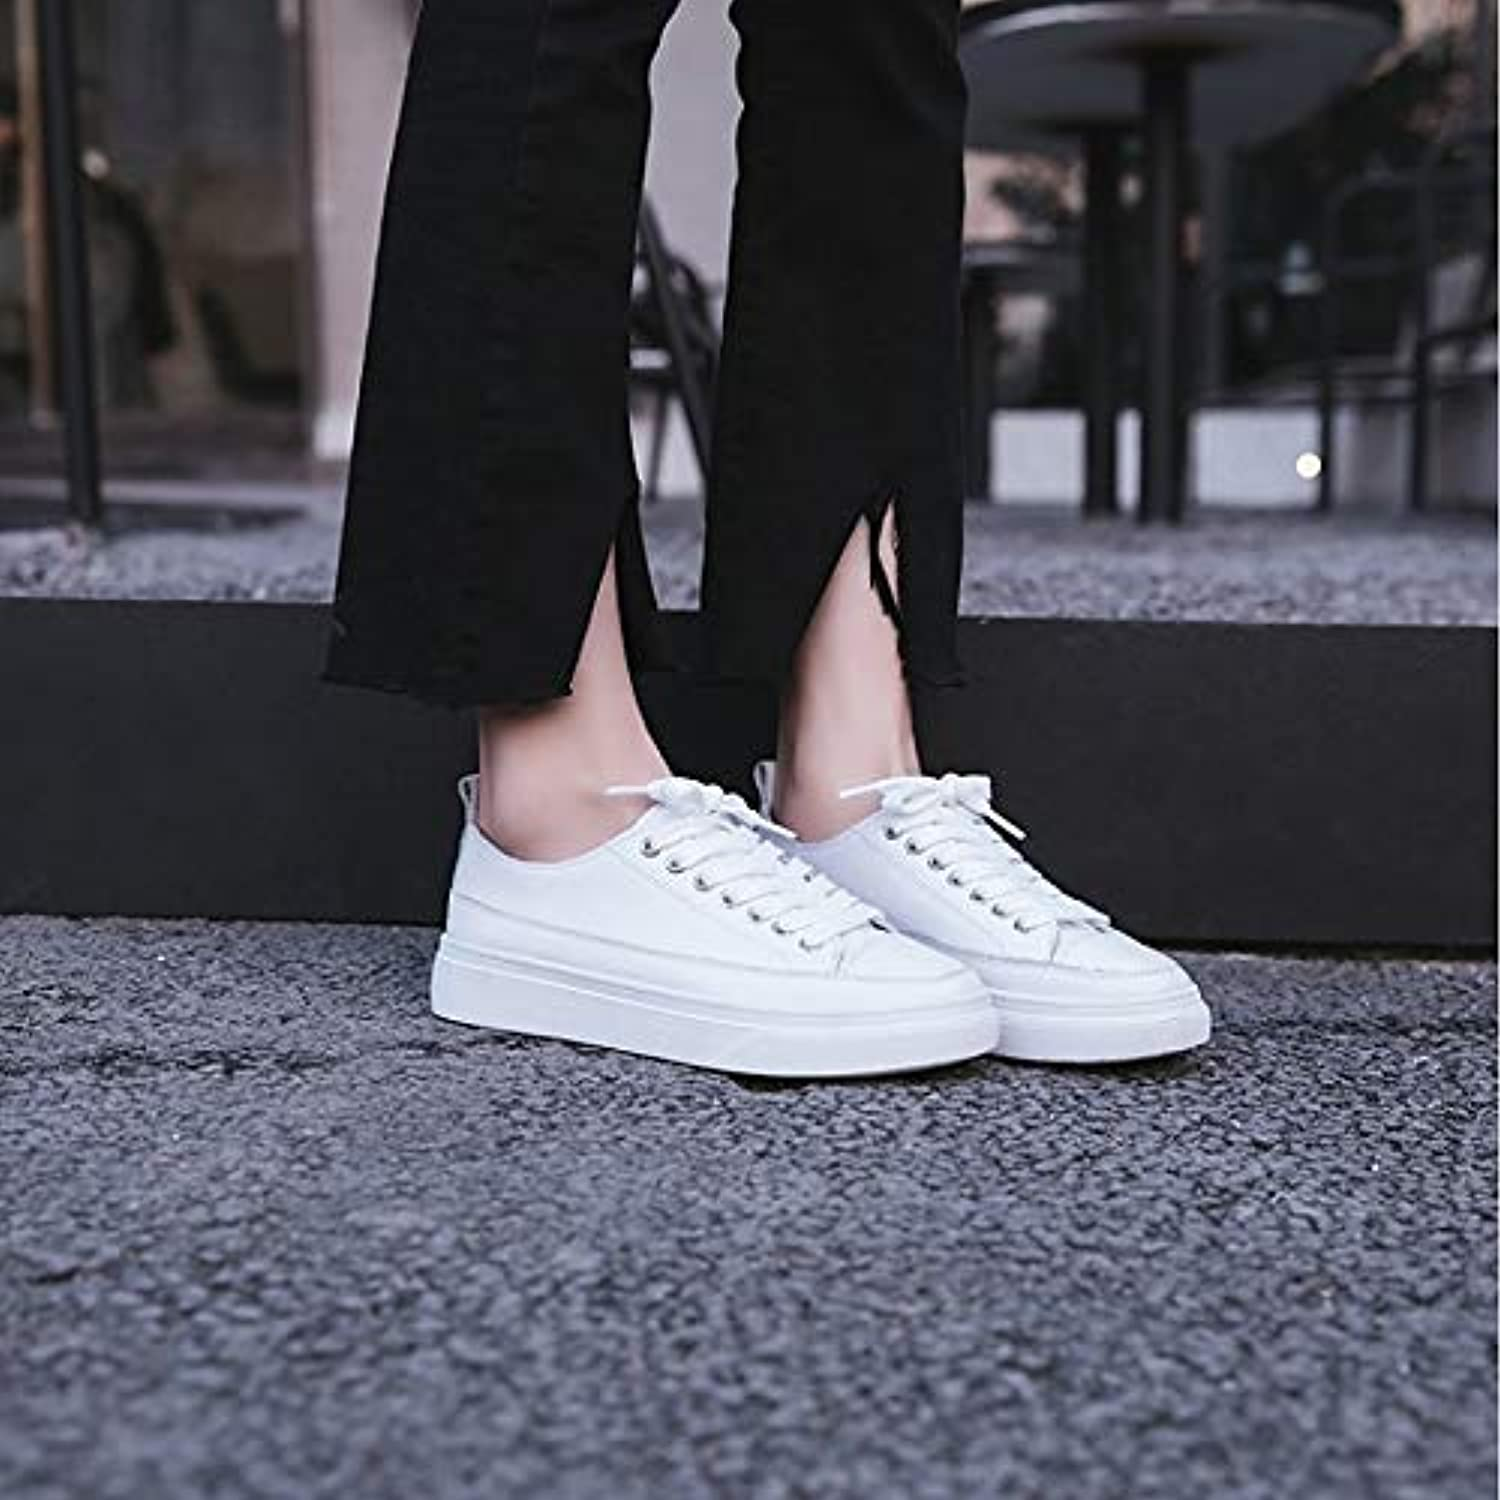 Women's shoes Leather Spring Comfort Sneakers Flat Heel White Almond